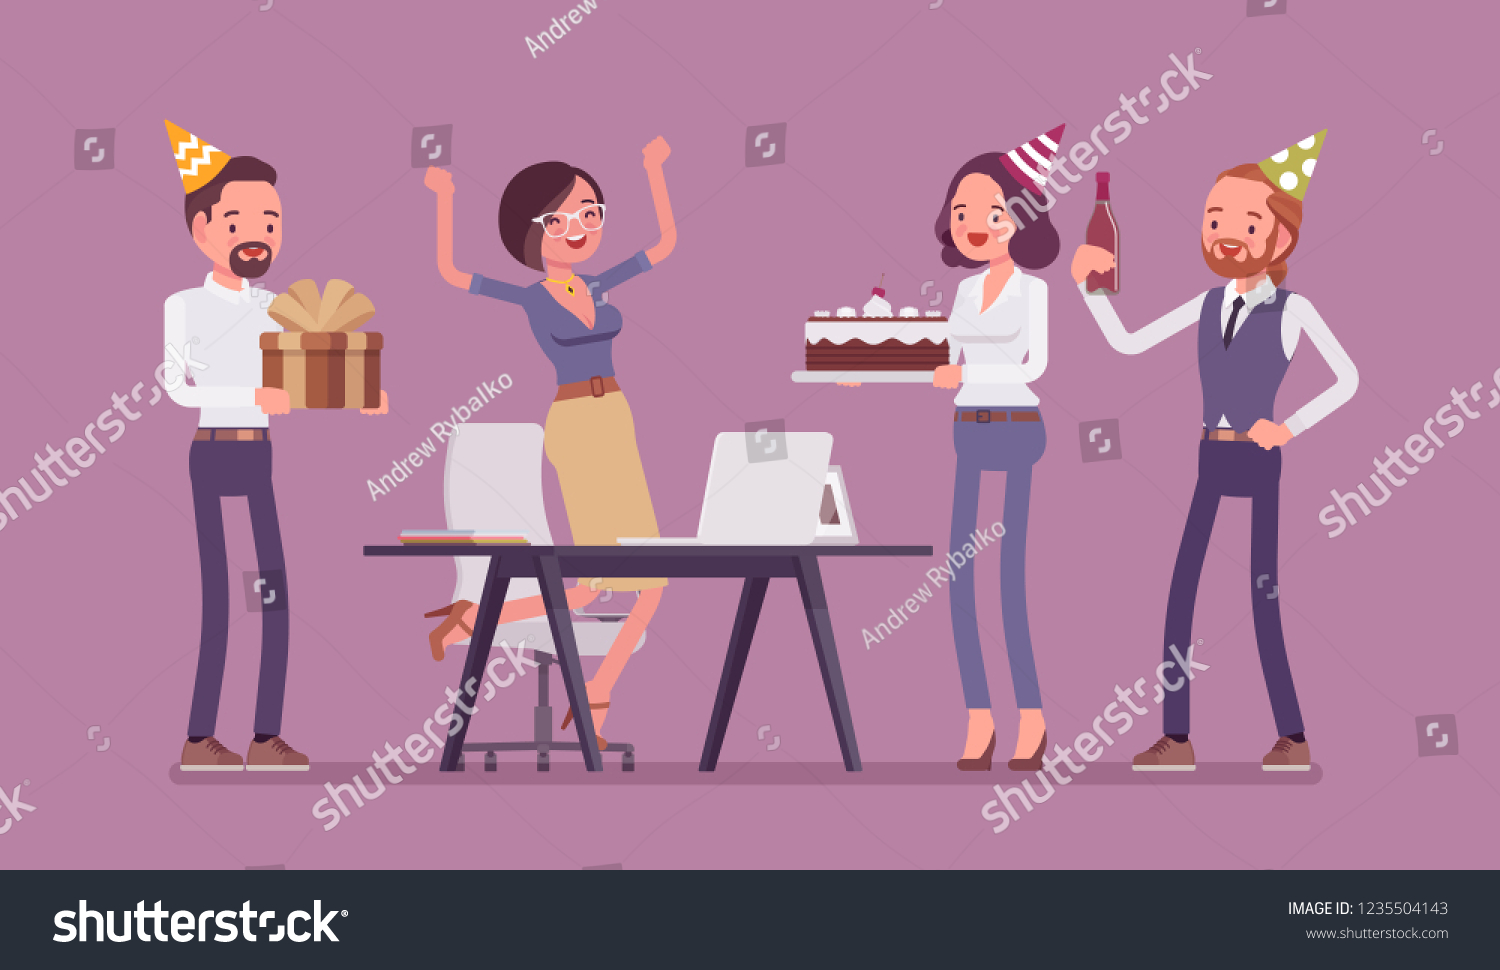 Birthday Party In The Office Female Happy Employee Celebration And Giving Gifts By Friends